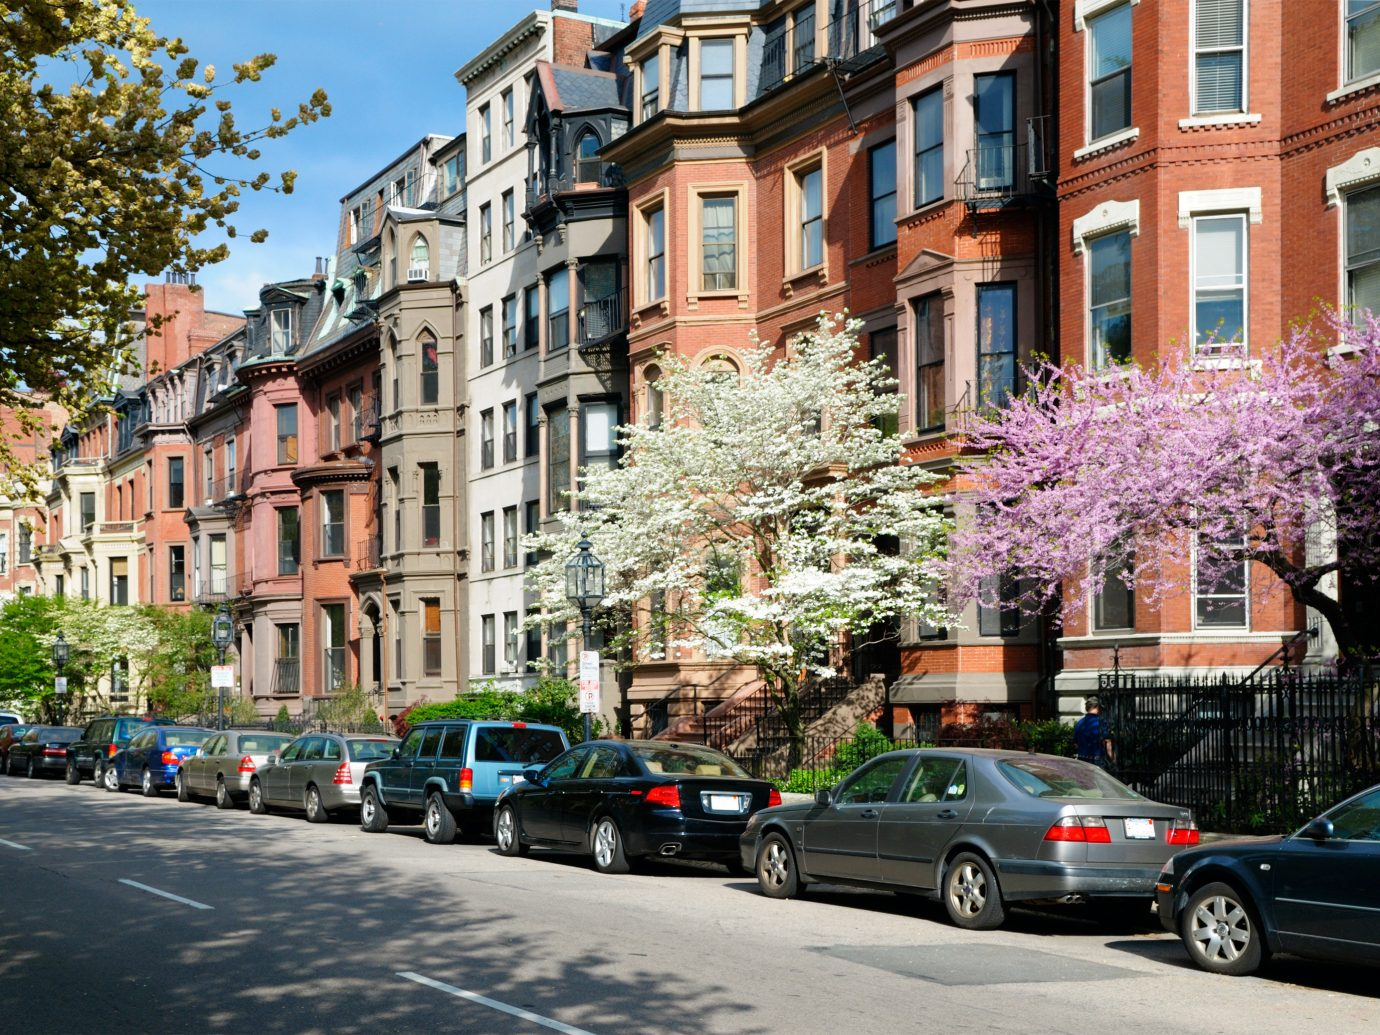 Row of brownstone houses in Boston.